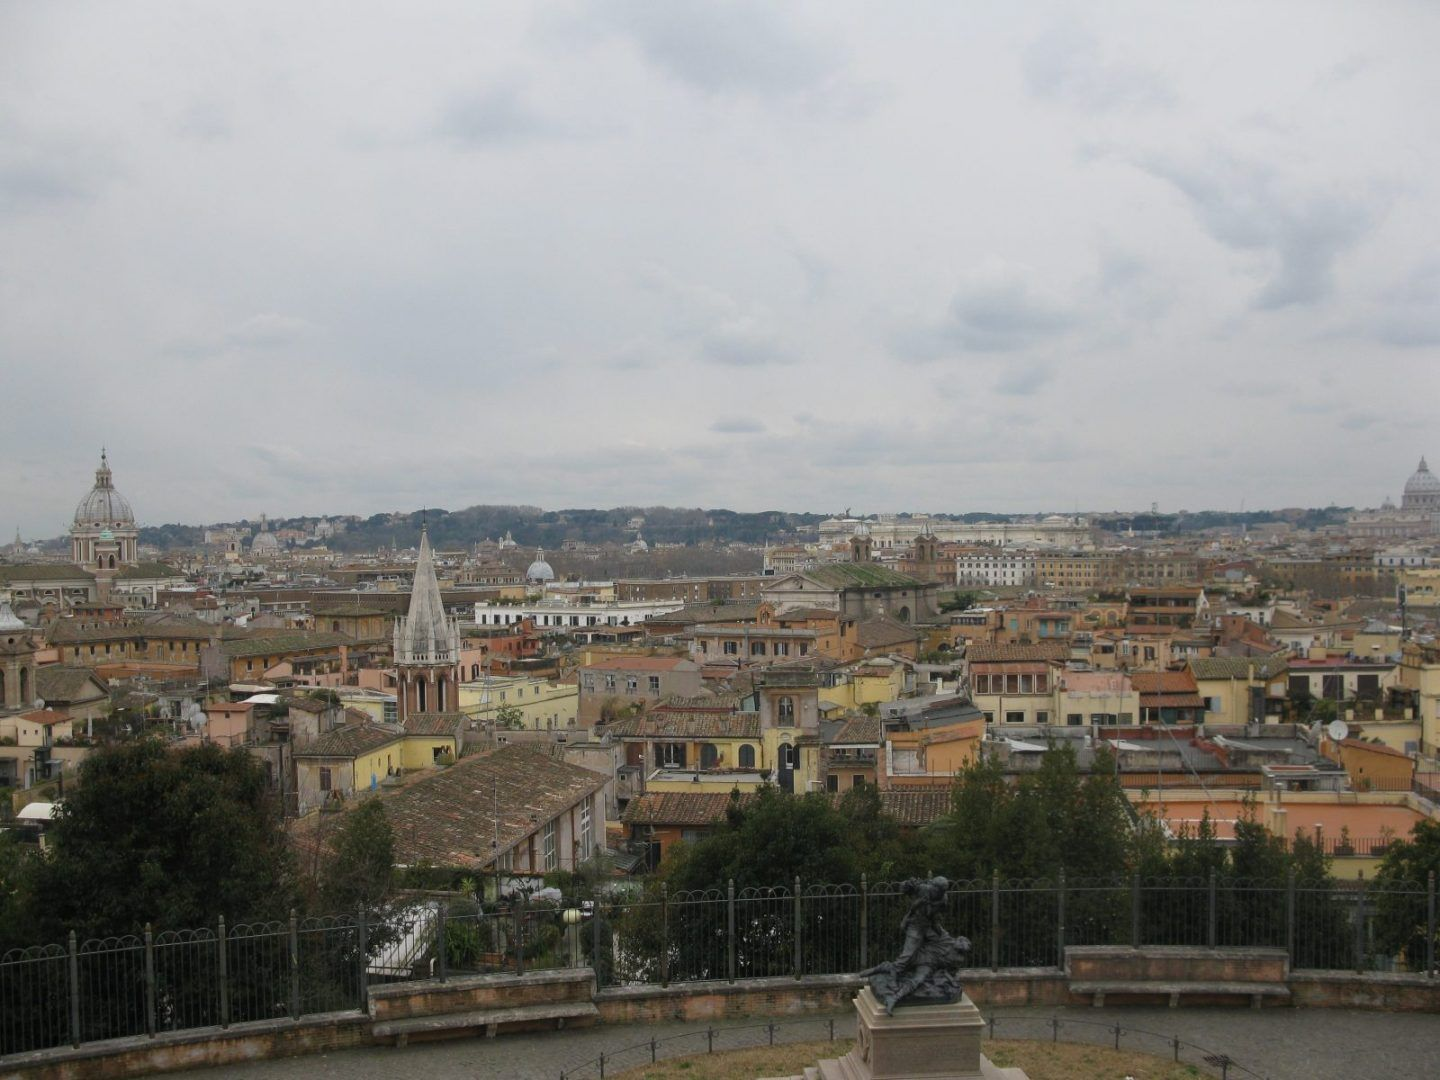 View from Villa Borghese μέρες στη Ρώμη travelshare.gr